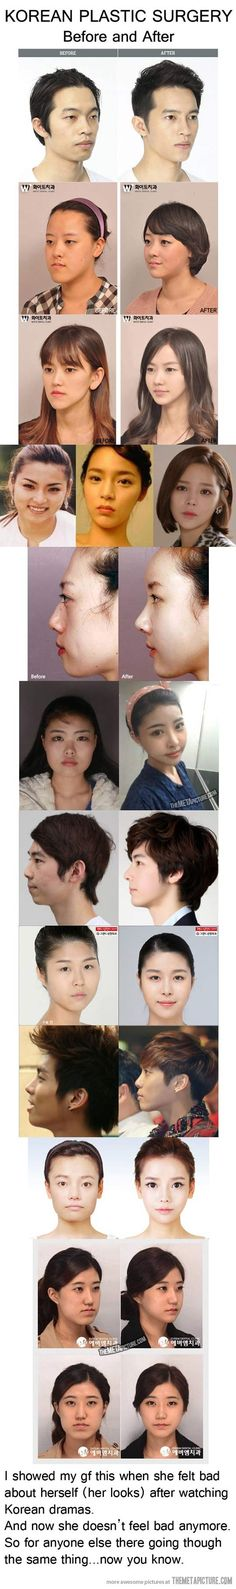 Funny pictures about Extreme Korean plastic surgery. Oh, and cool pics about Extreme Korean plastic surgery. Also, Extreme Korean plastic surgery. Extreme Plastic Surgery, Korean Plastic Surgery, Plastic Surgery Photos, Facial Cosmetic Surgery, Face Contouring Makeup, Liposuction, Korean Beauty, Beauty Hacks, Beauty Ideas